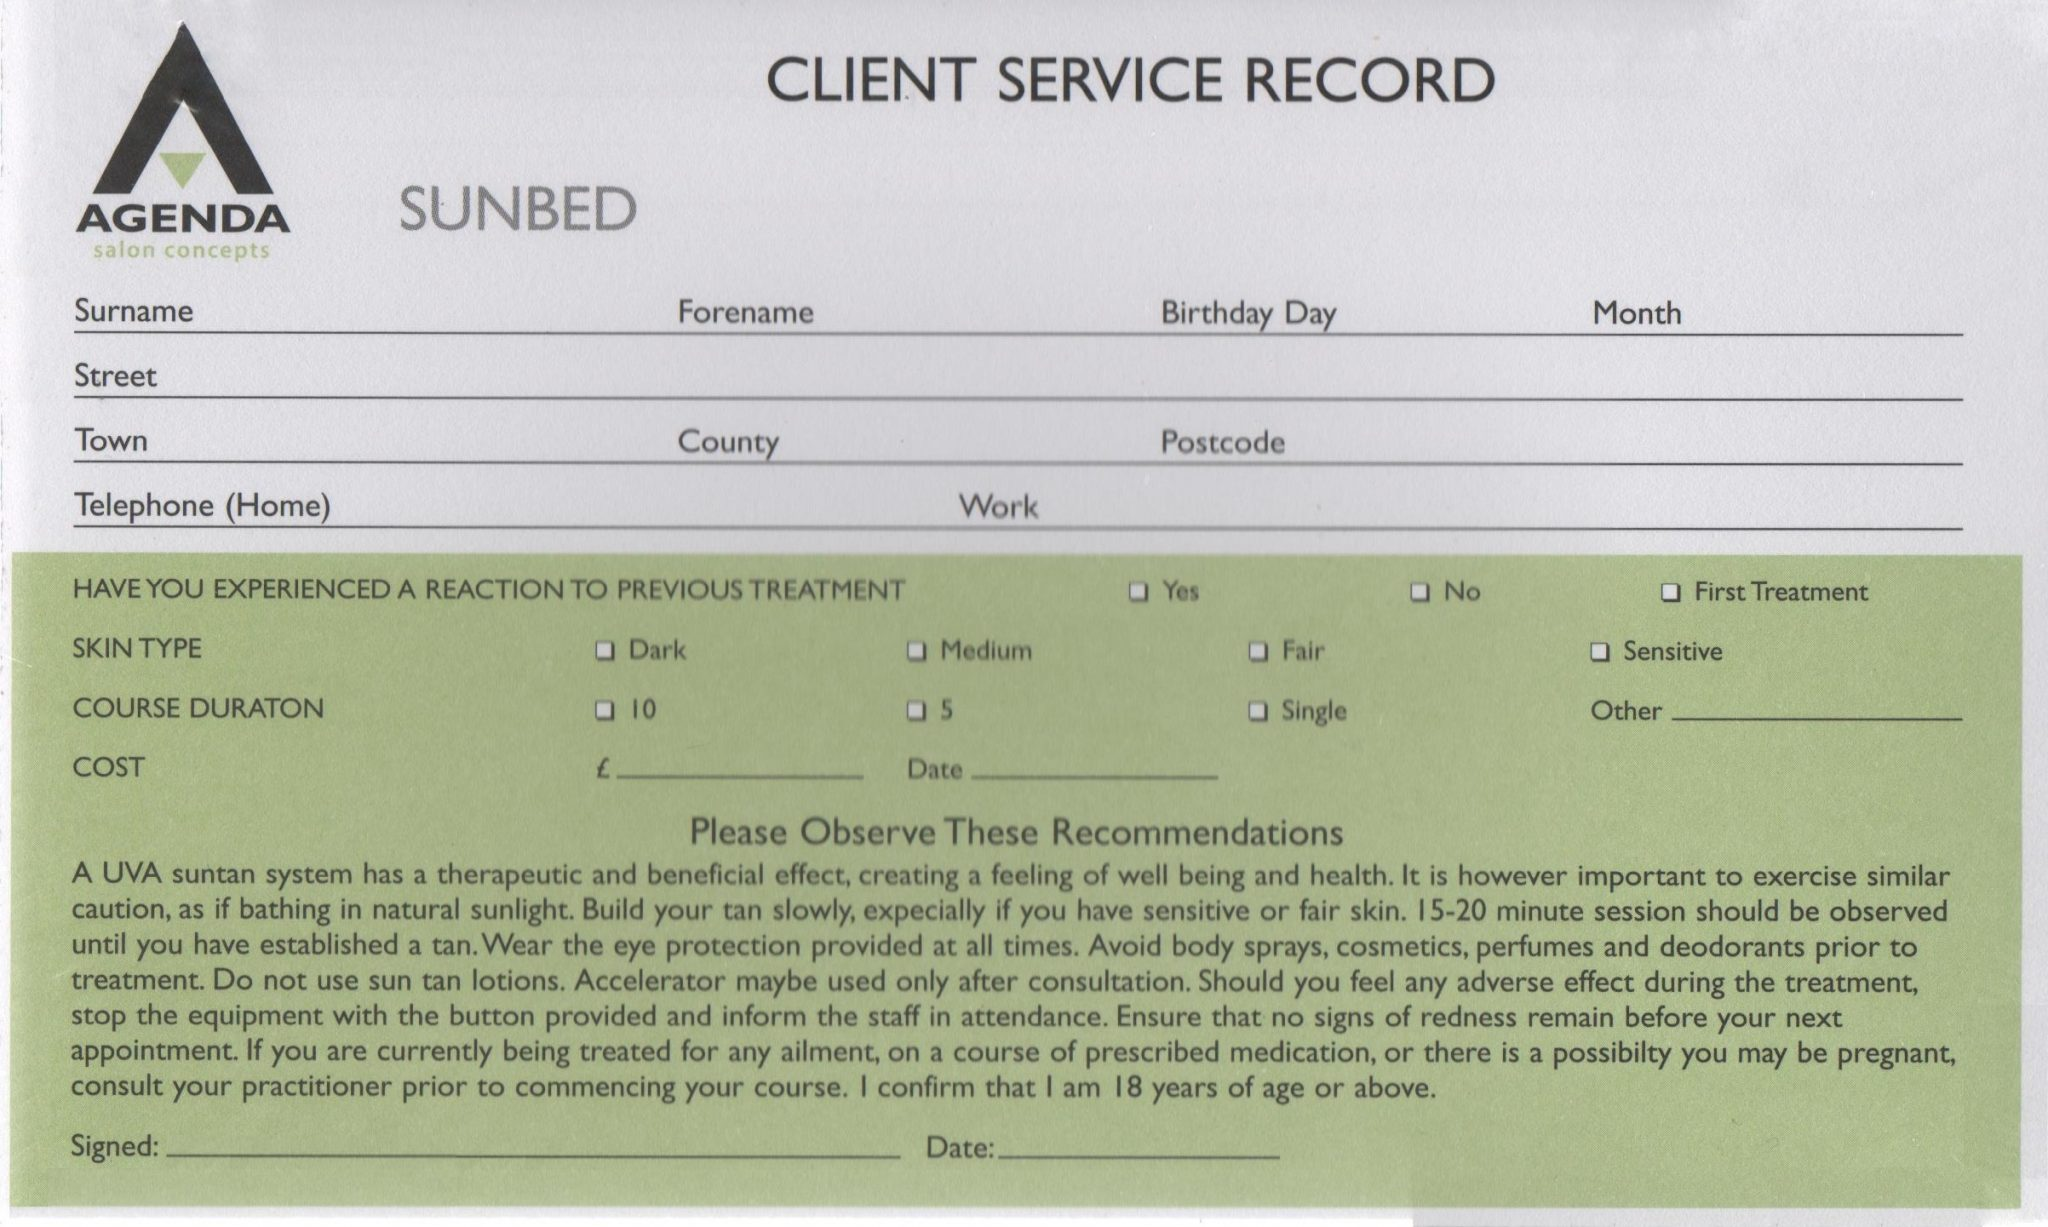 Agenda Client Service Record Cards - Sunbed